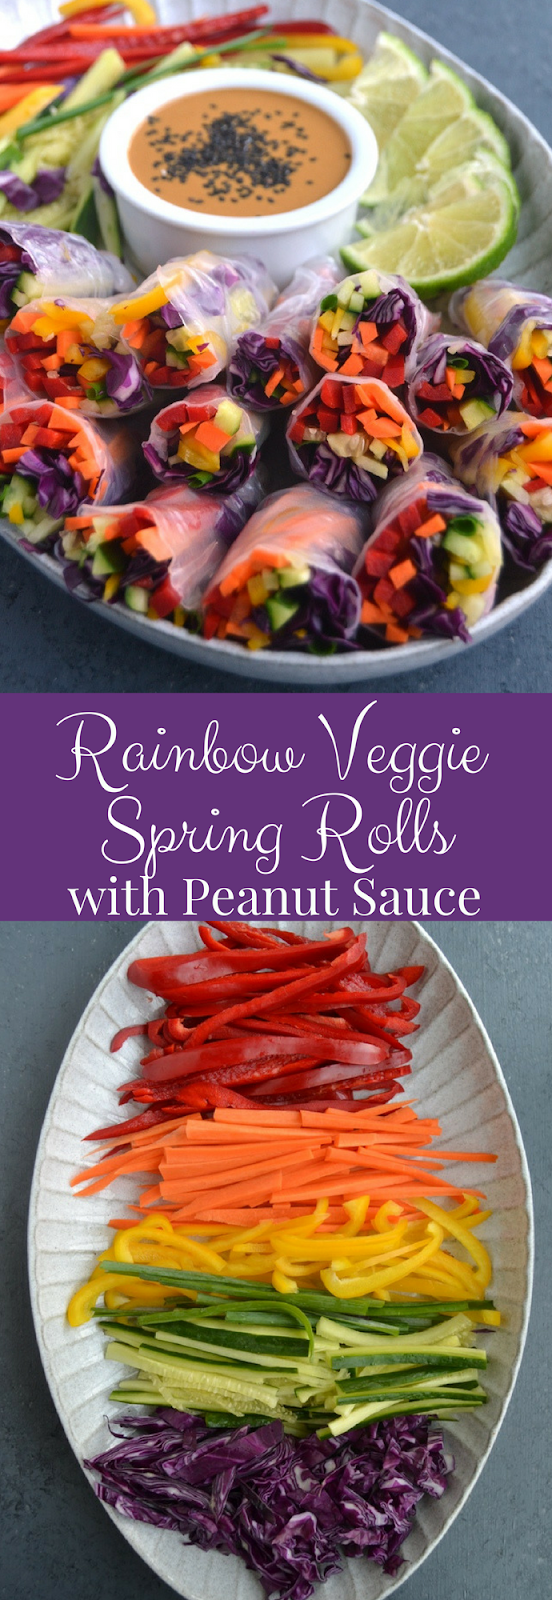 Rainbow Veggie Spring Rolls with Peanut Dipping Sauce are loaded with red pepper, carrots, yellow peppers, cucumber, green onion and red cabbage and dipped in an easy peanut sauce for the perfect appetizer. www.nutritionistreviews.com